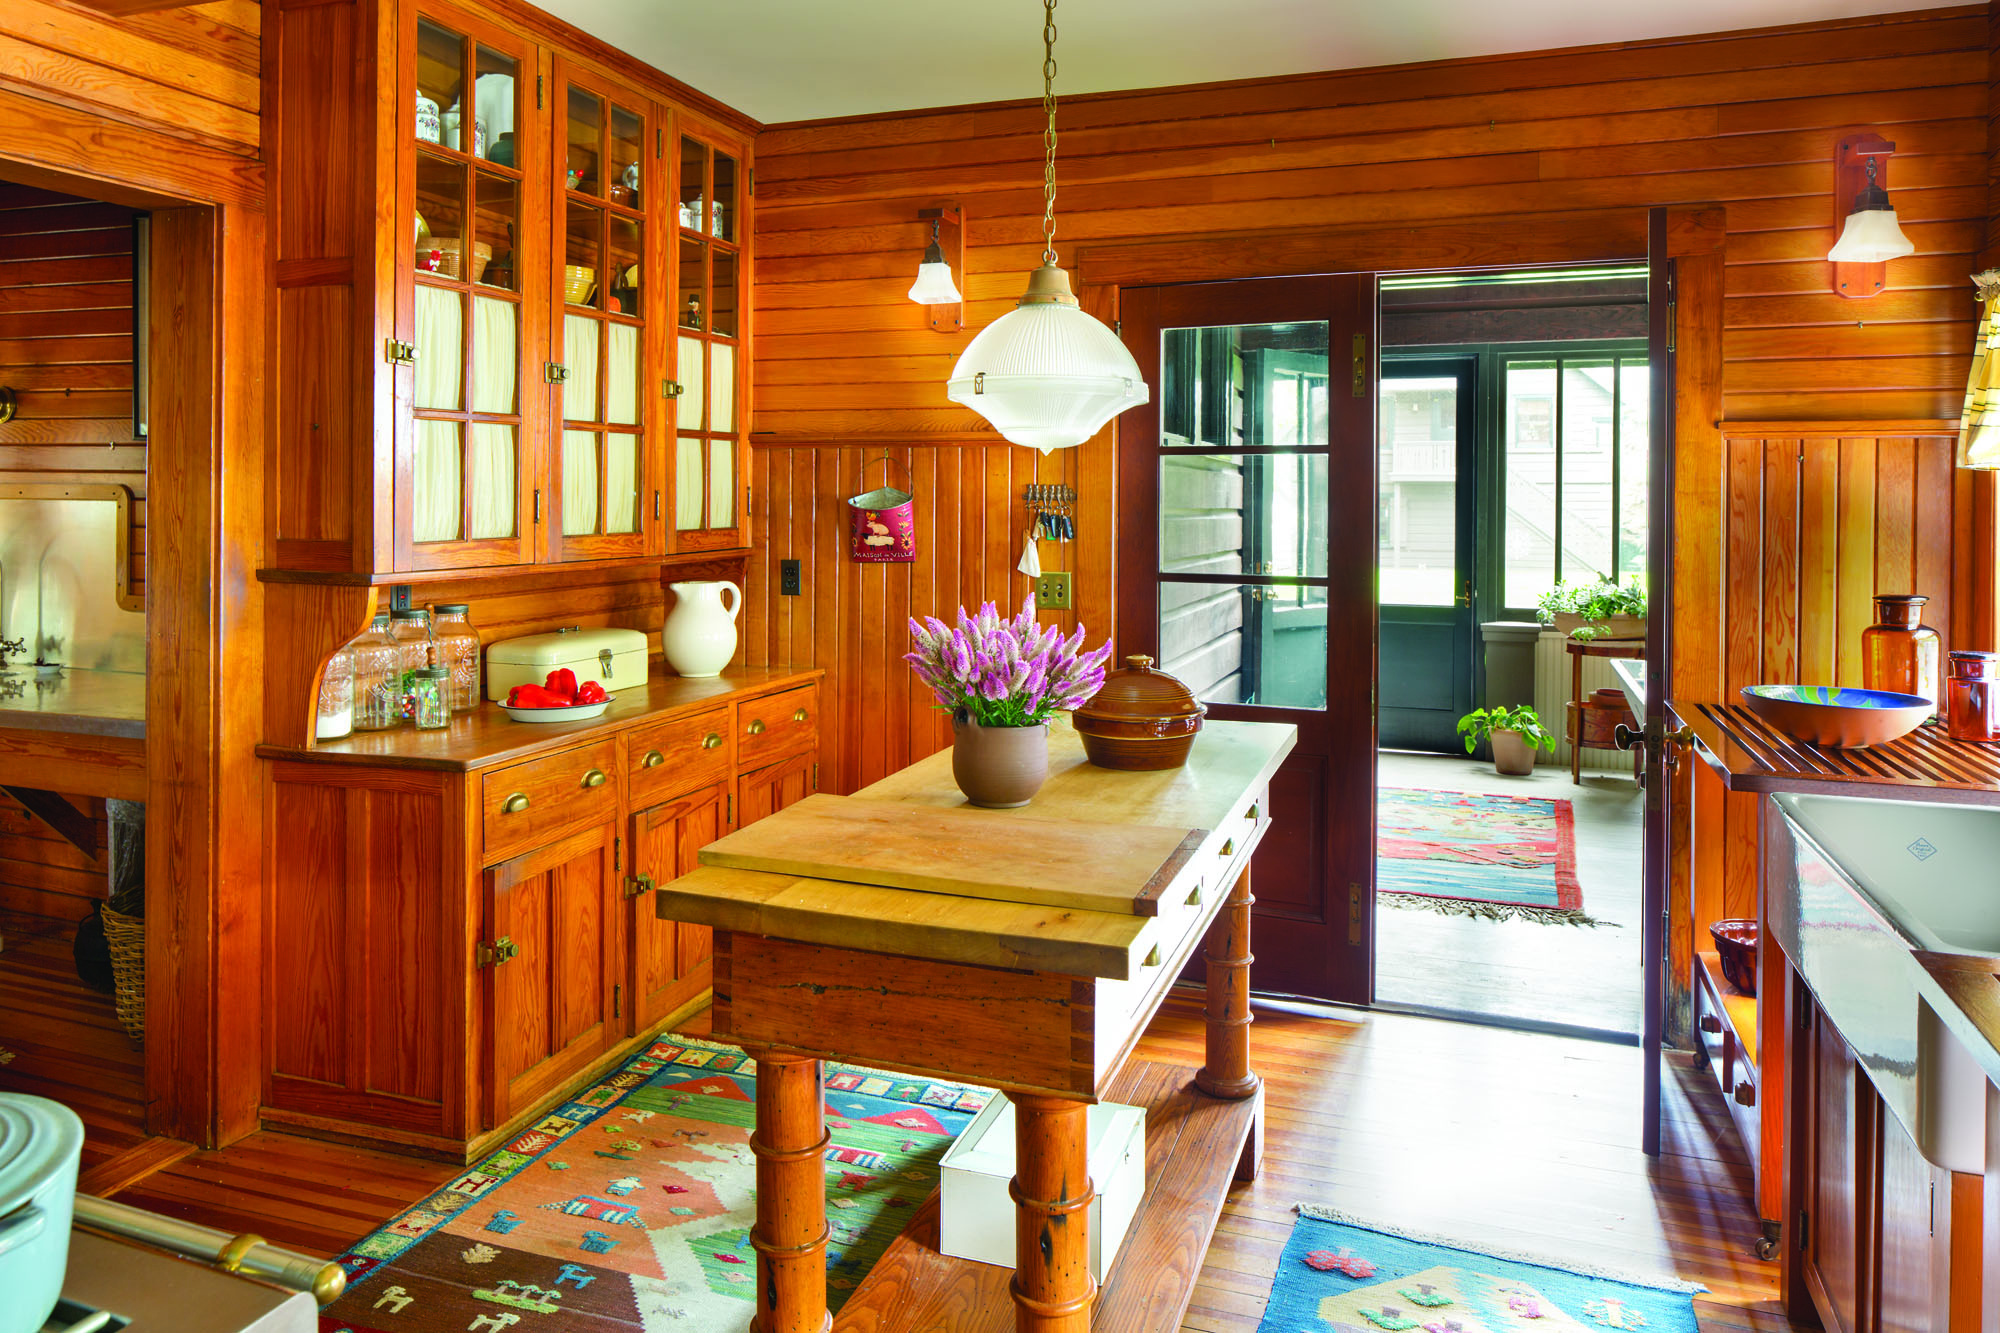 Tongue-and-groove paneling is original to the house, and a fitting envelope for the kitchen that was rebuilt according to its 1915 intentions. The tall cabinet is original. A big worktable sits in the middle; other cabinets are on wheels.